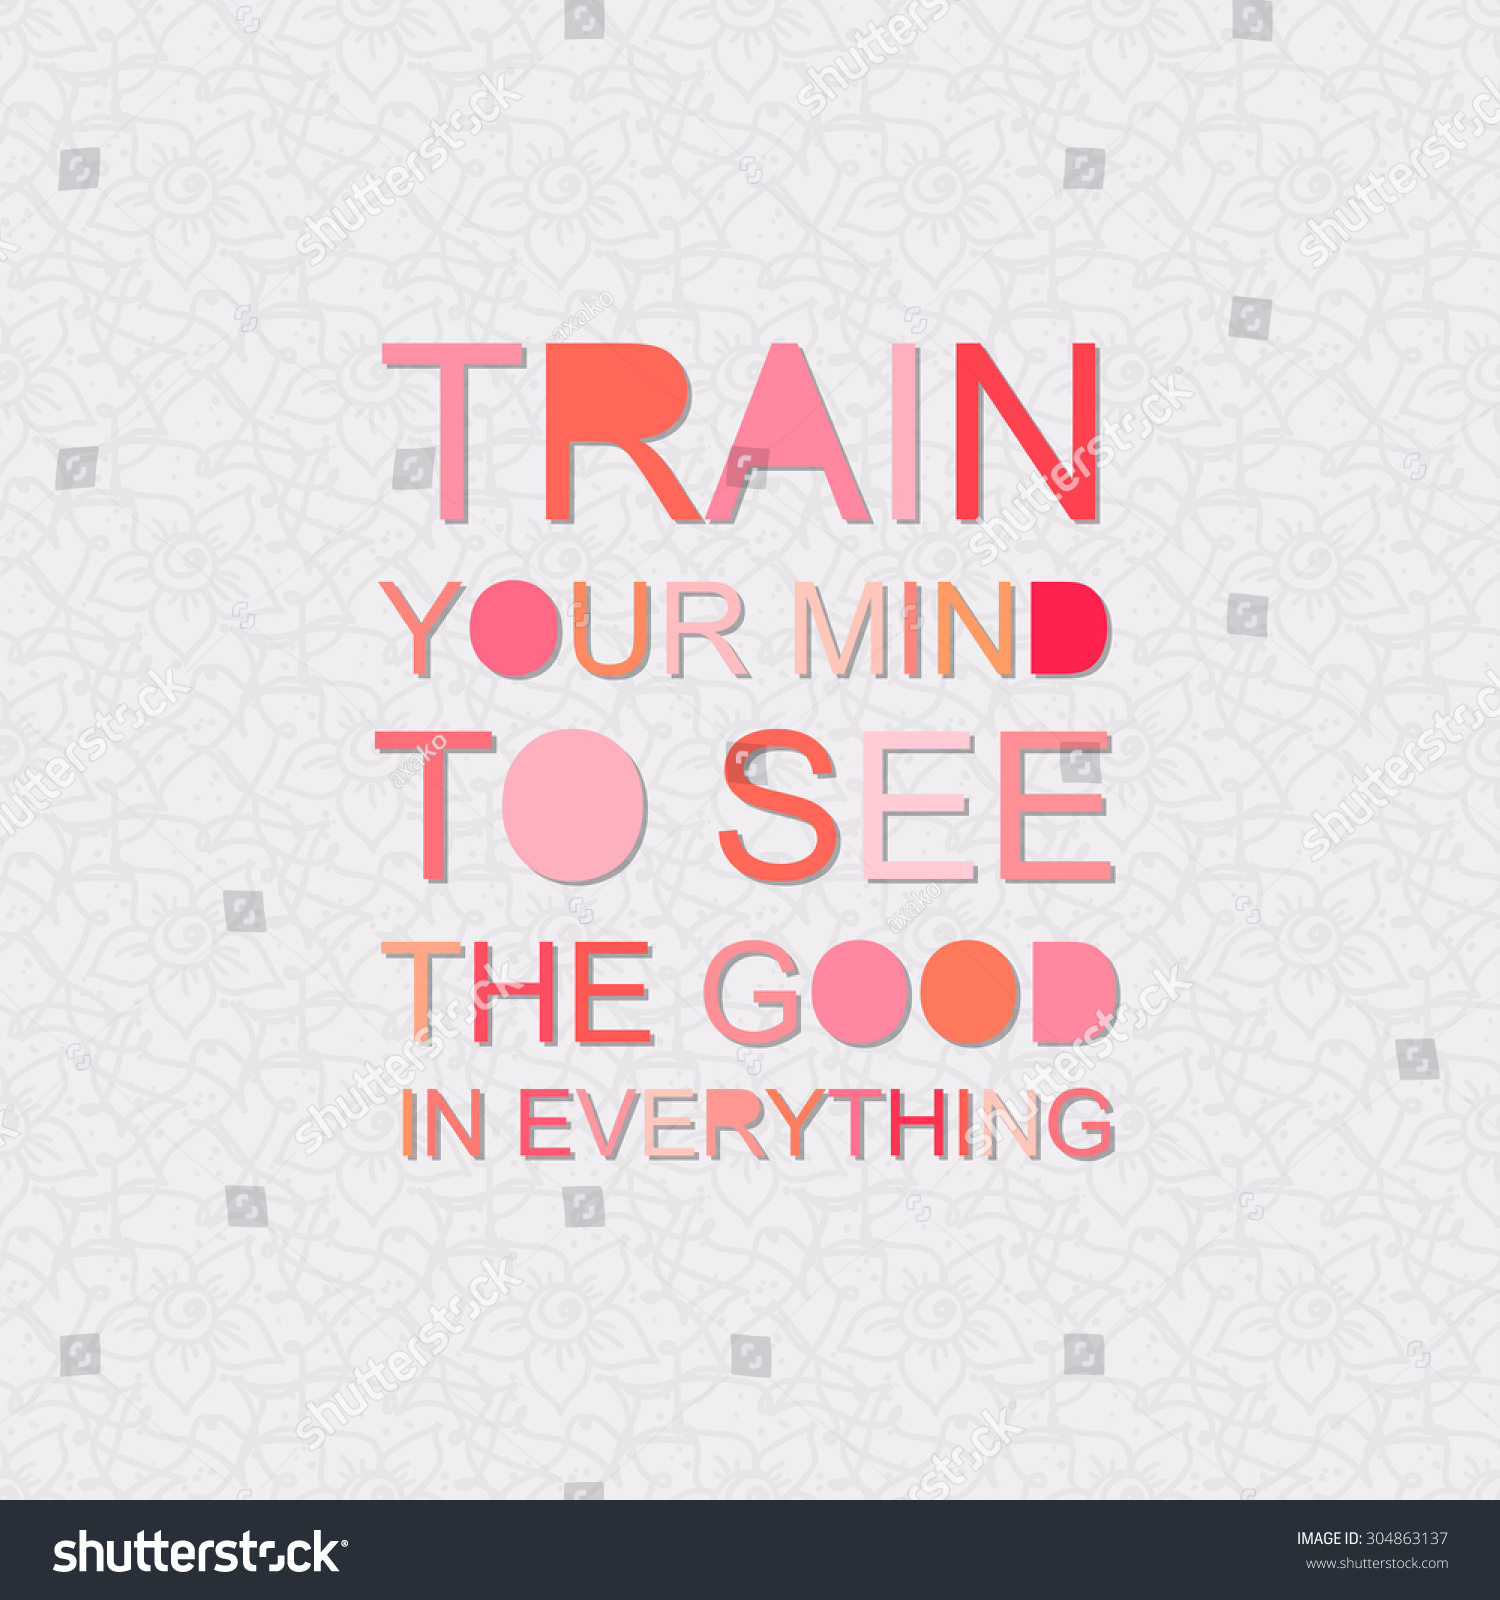 Train Your Mind See Good Everything Stock Vector Royalty Free